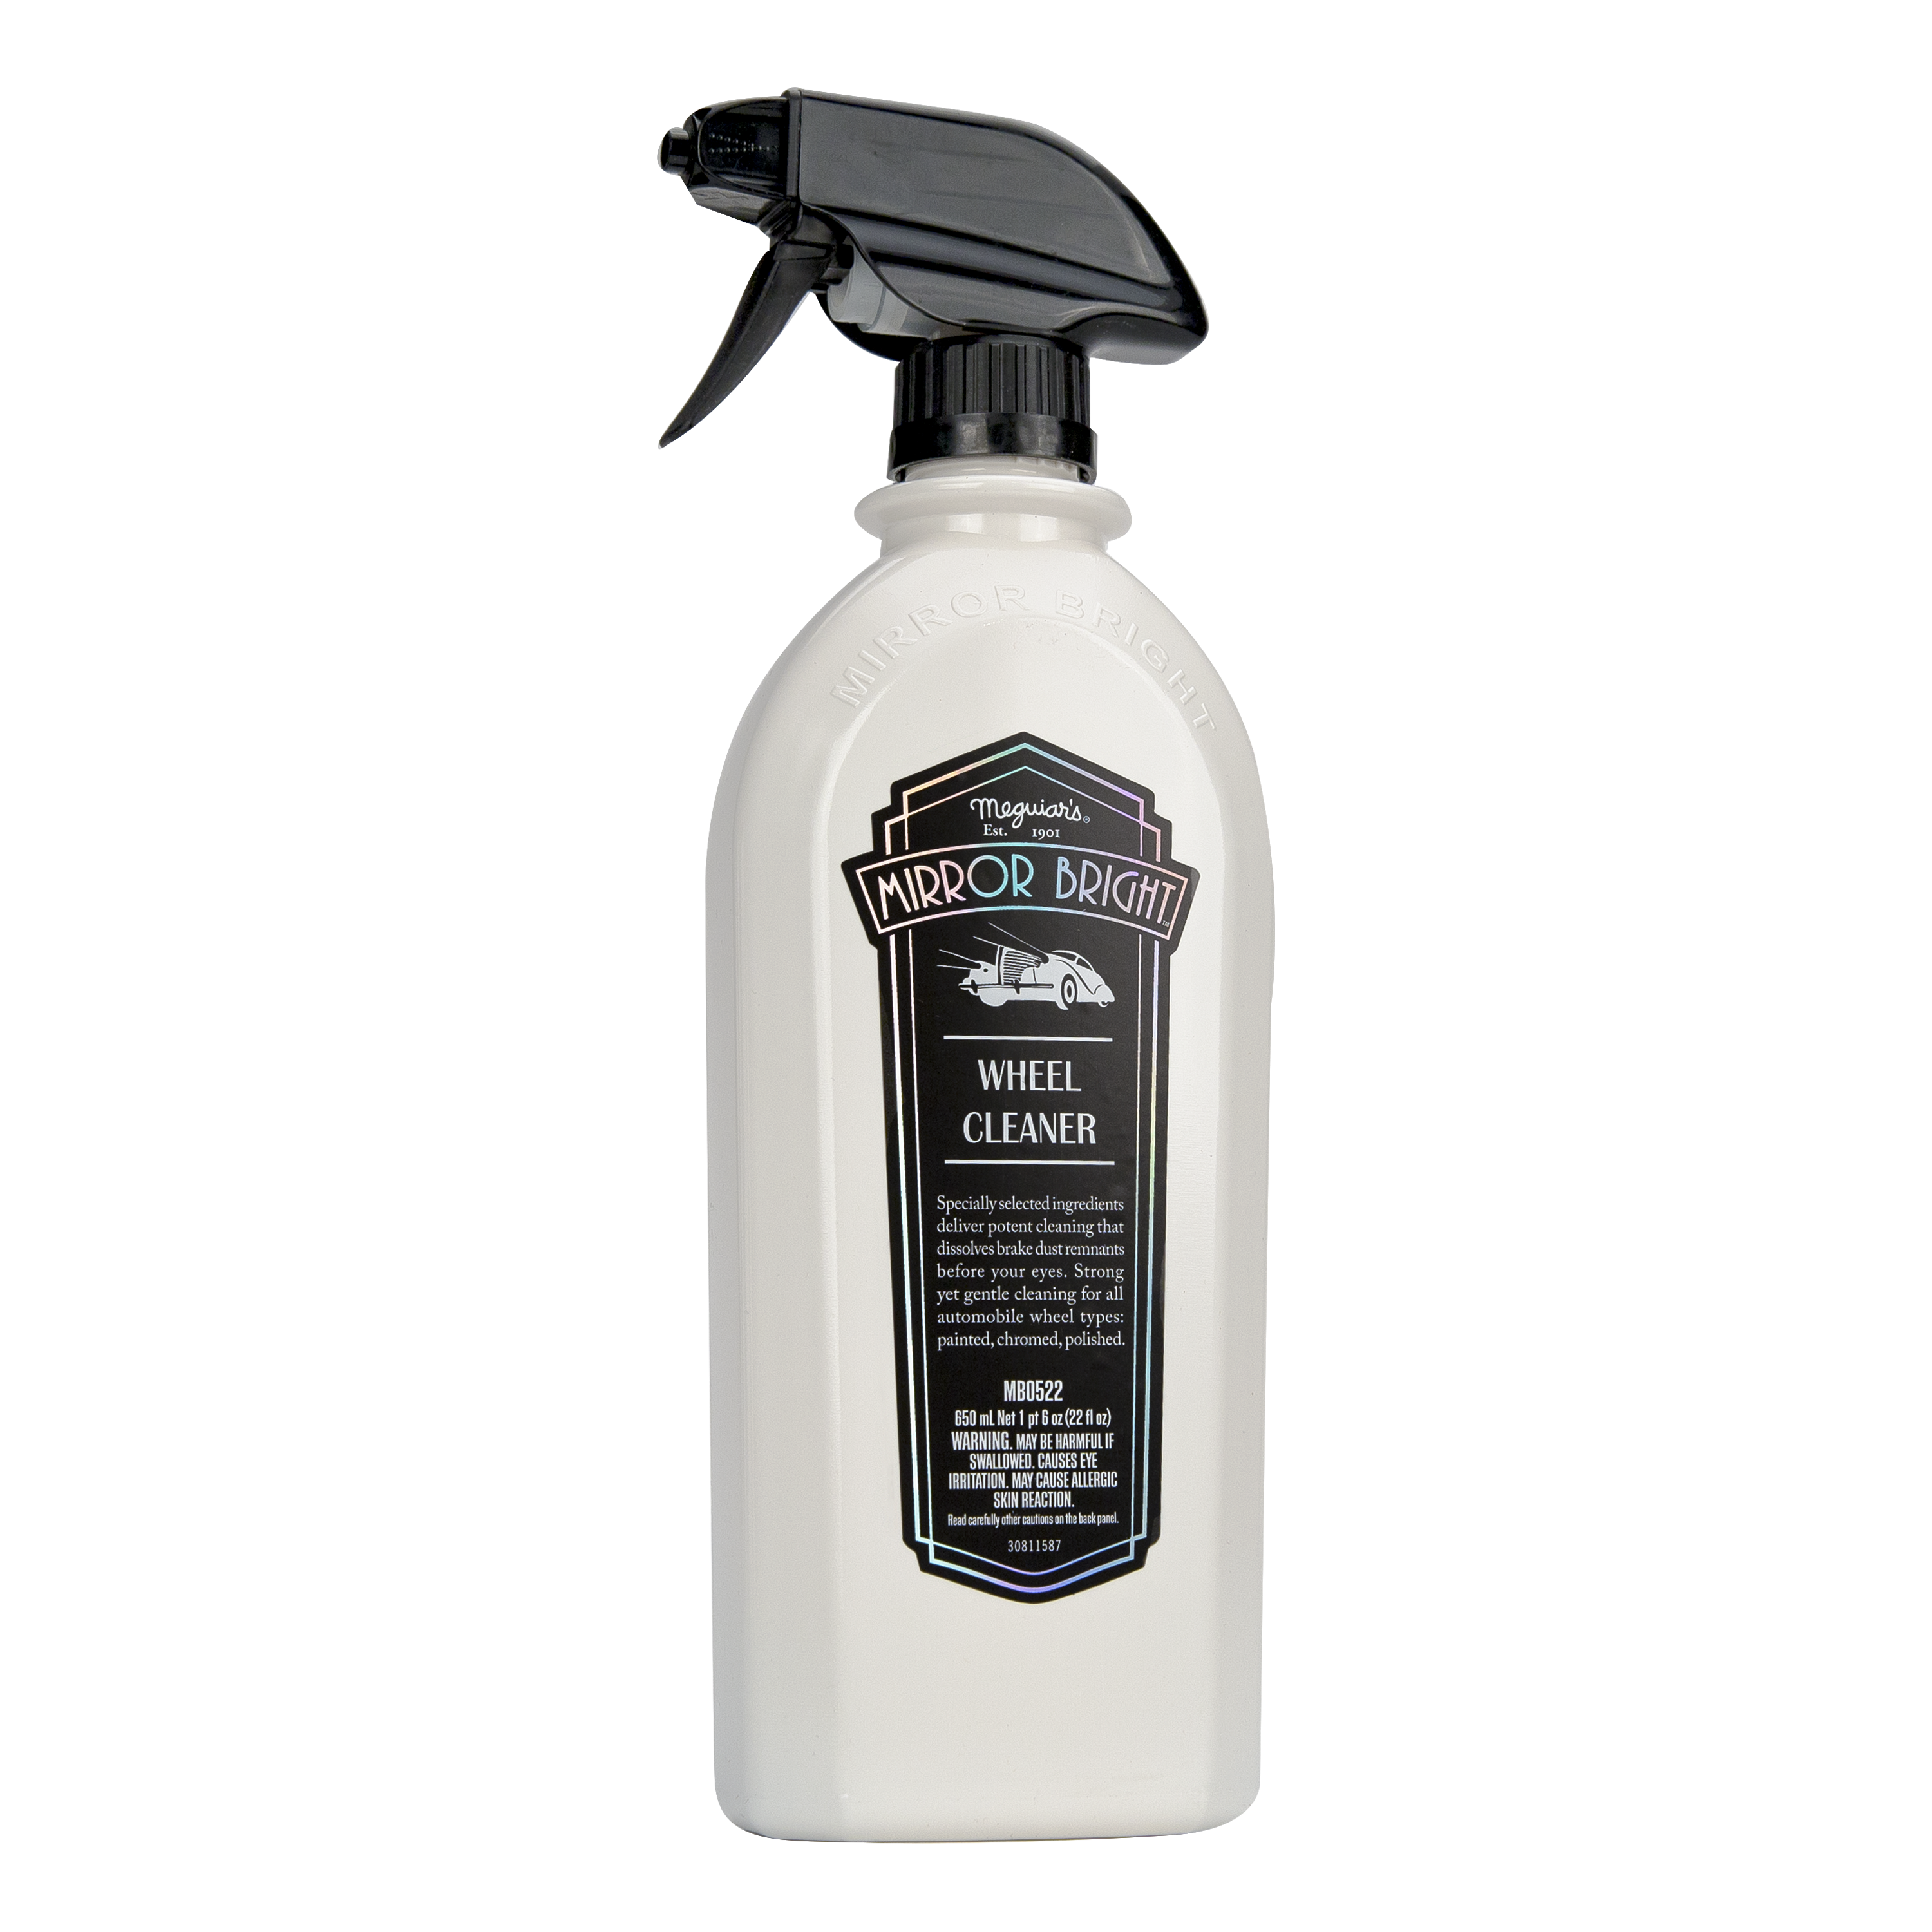 MB0522 Mirror Bright Wheel Cleaner, 22 oz.